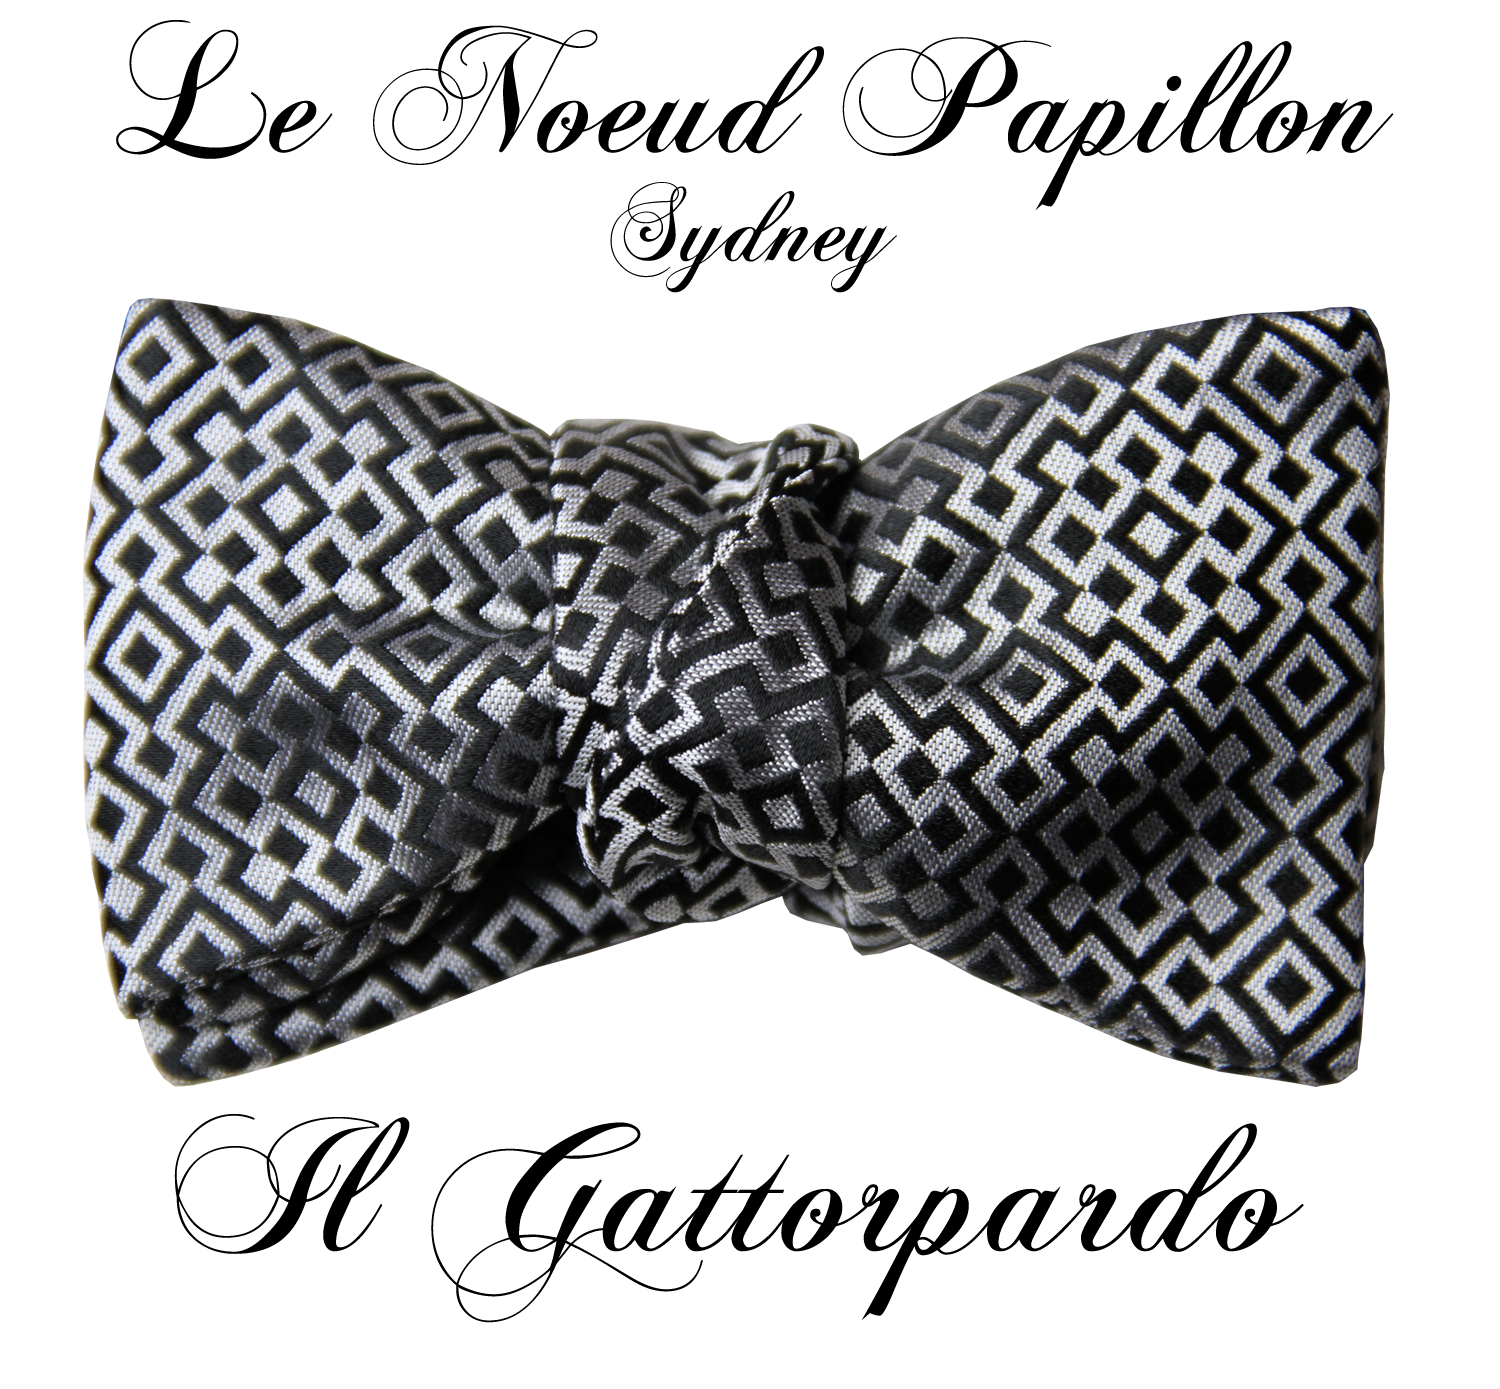 9ef68ae73e954 Le Noeud Papillon Of Sydney - For Lovers Of Bow Ties: July 2011